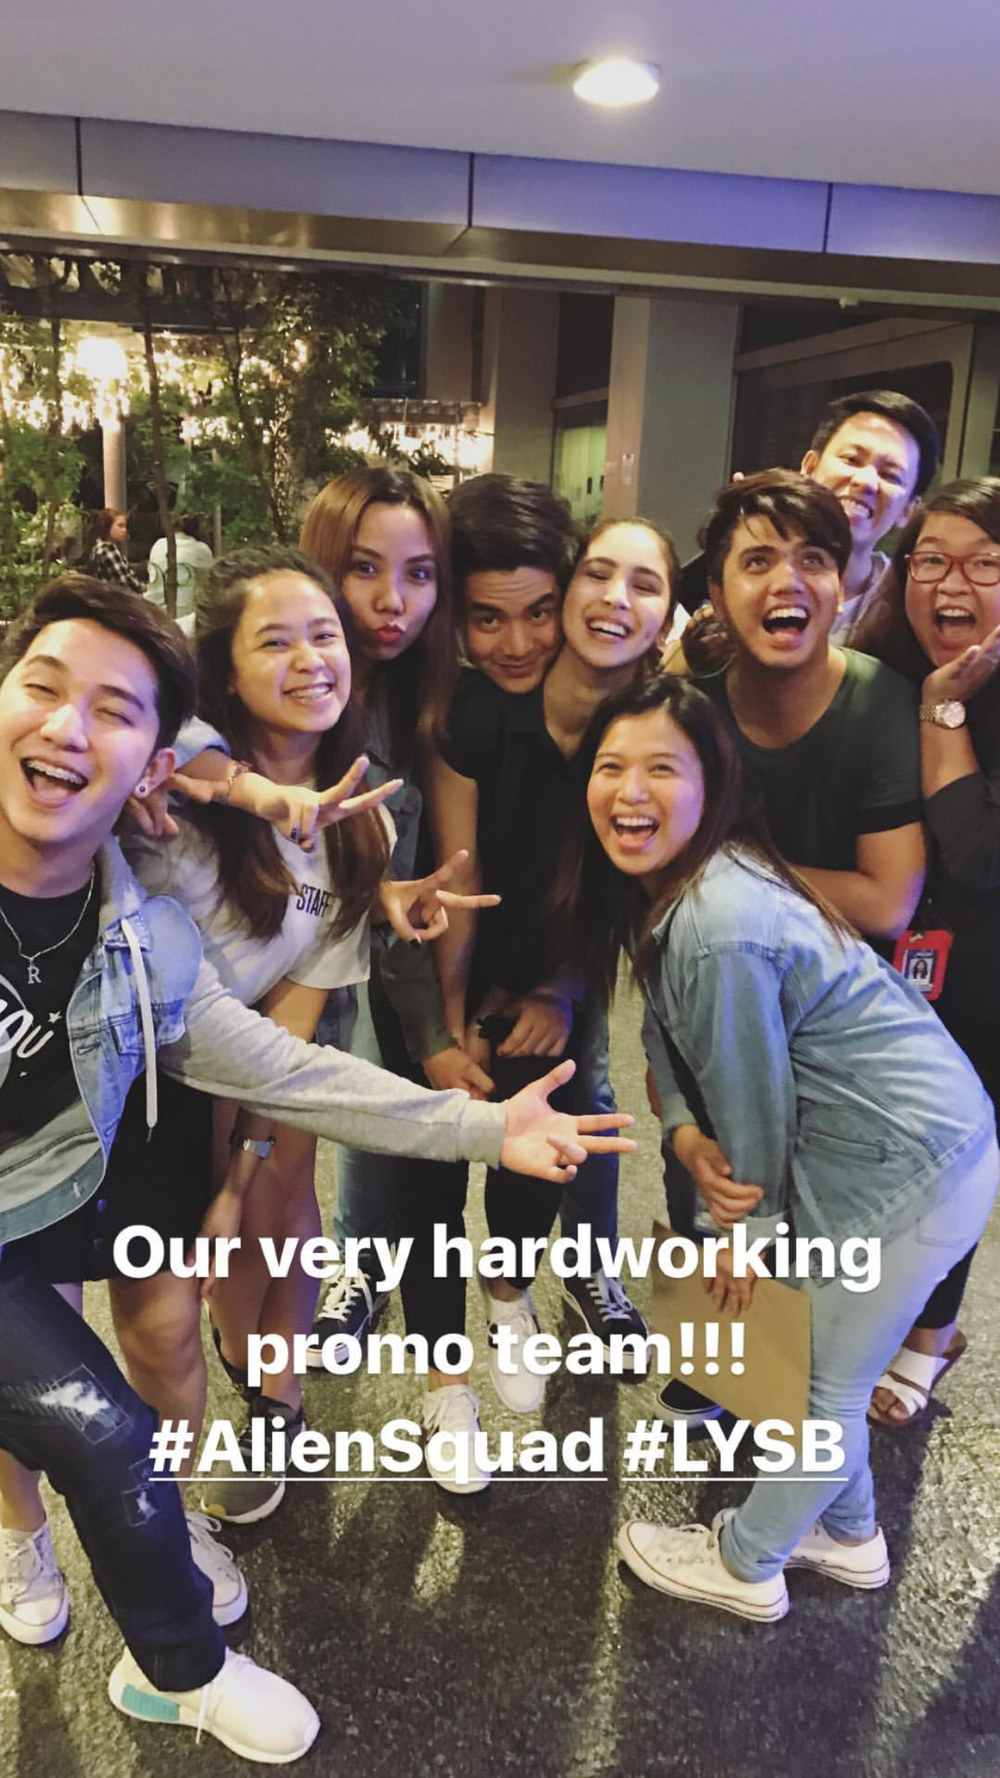 Photo grabbed from Julia's IG story